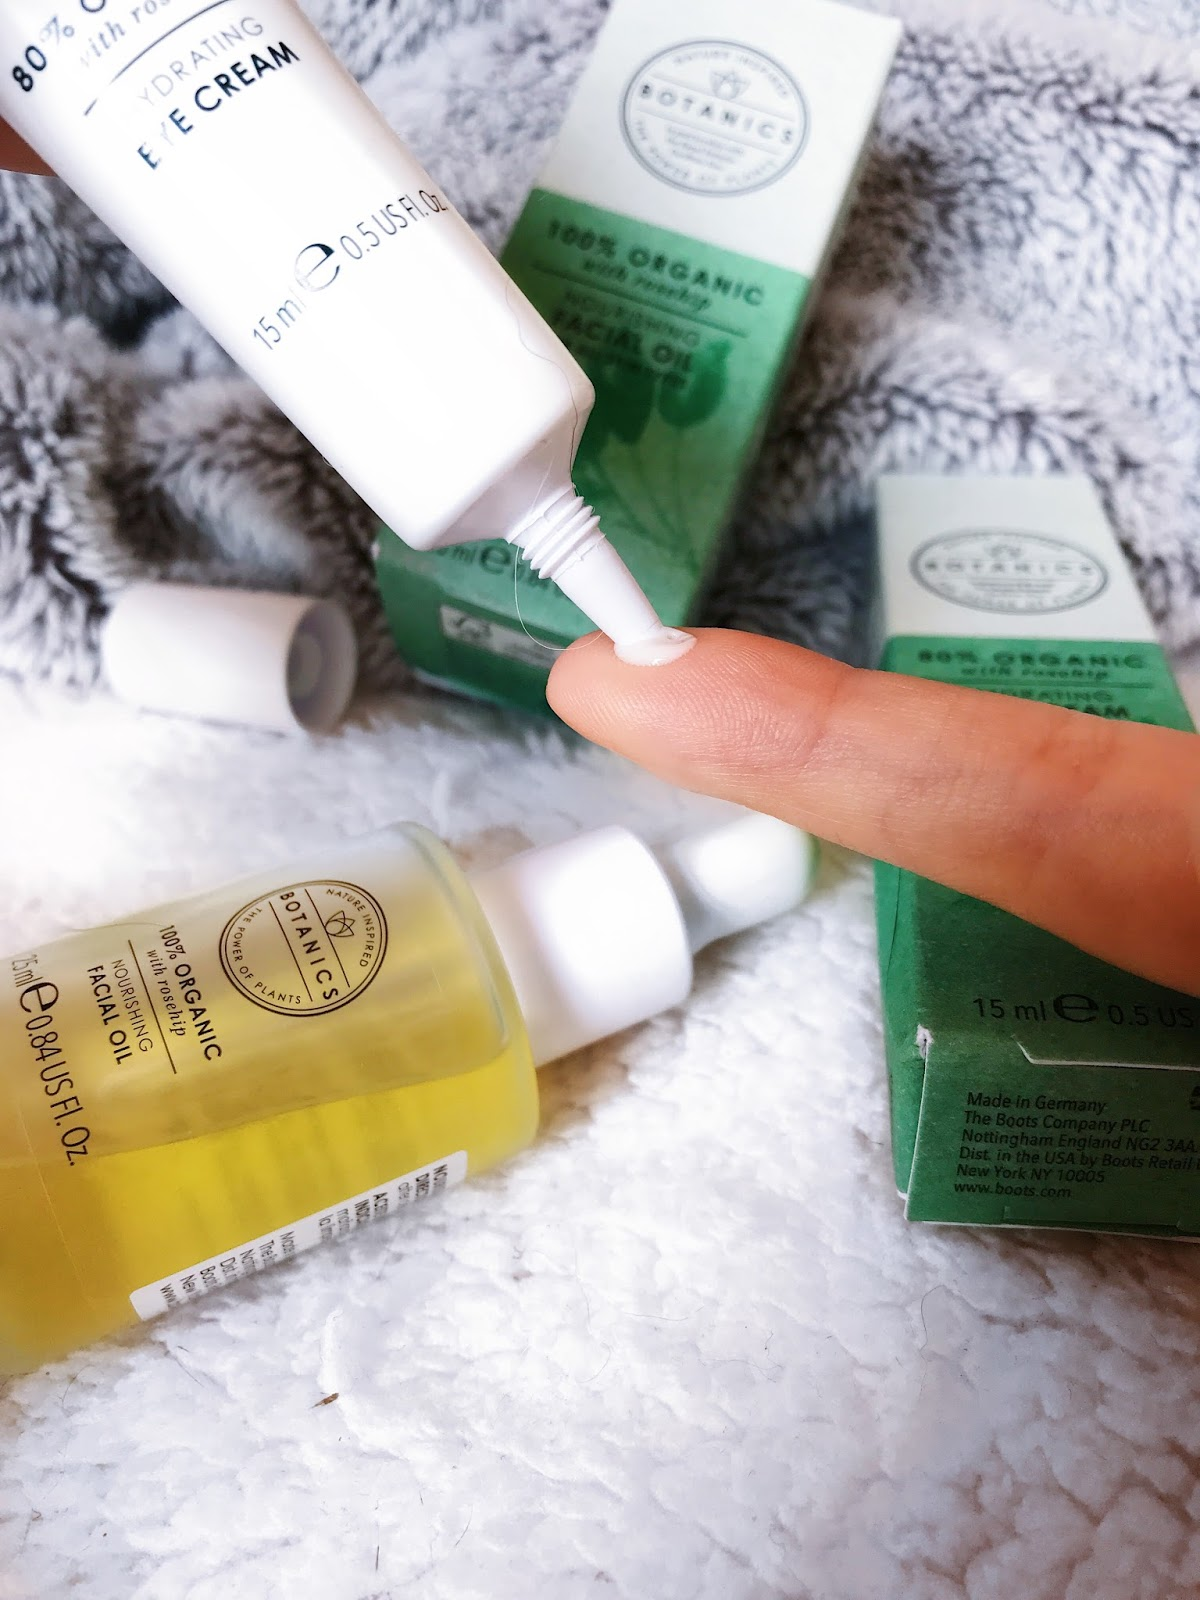 The Skincare Brand That Transformed My Skin